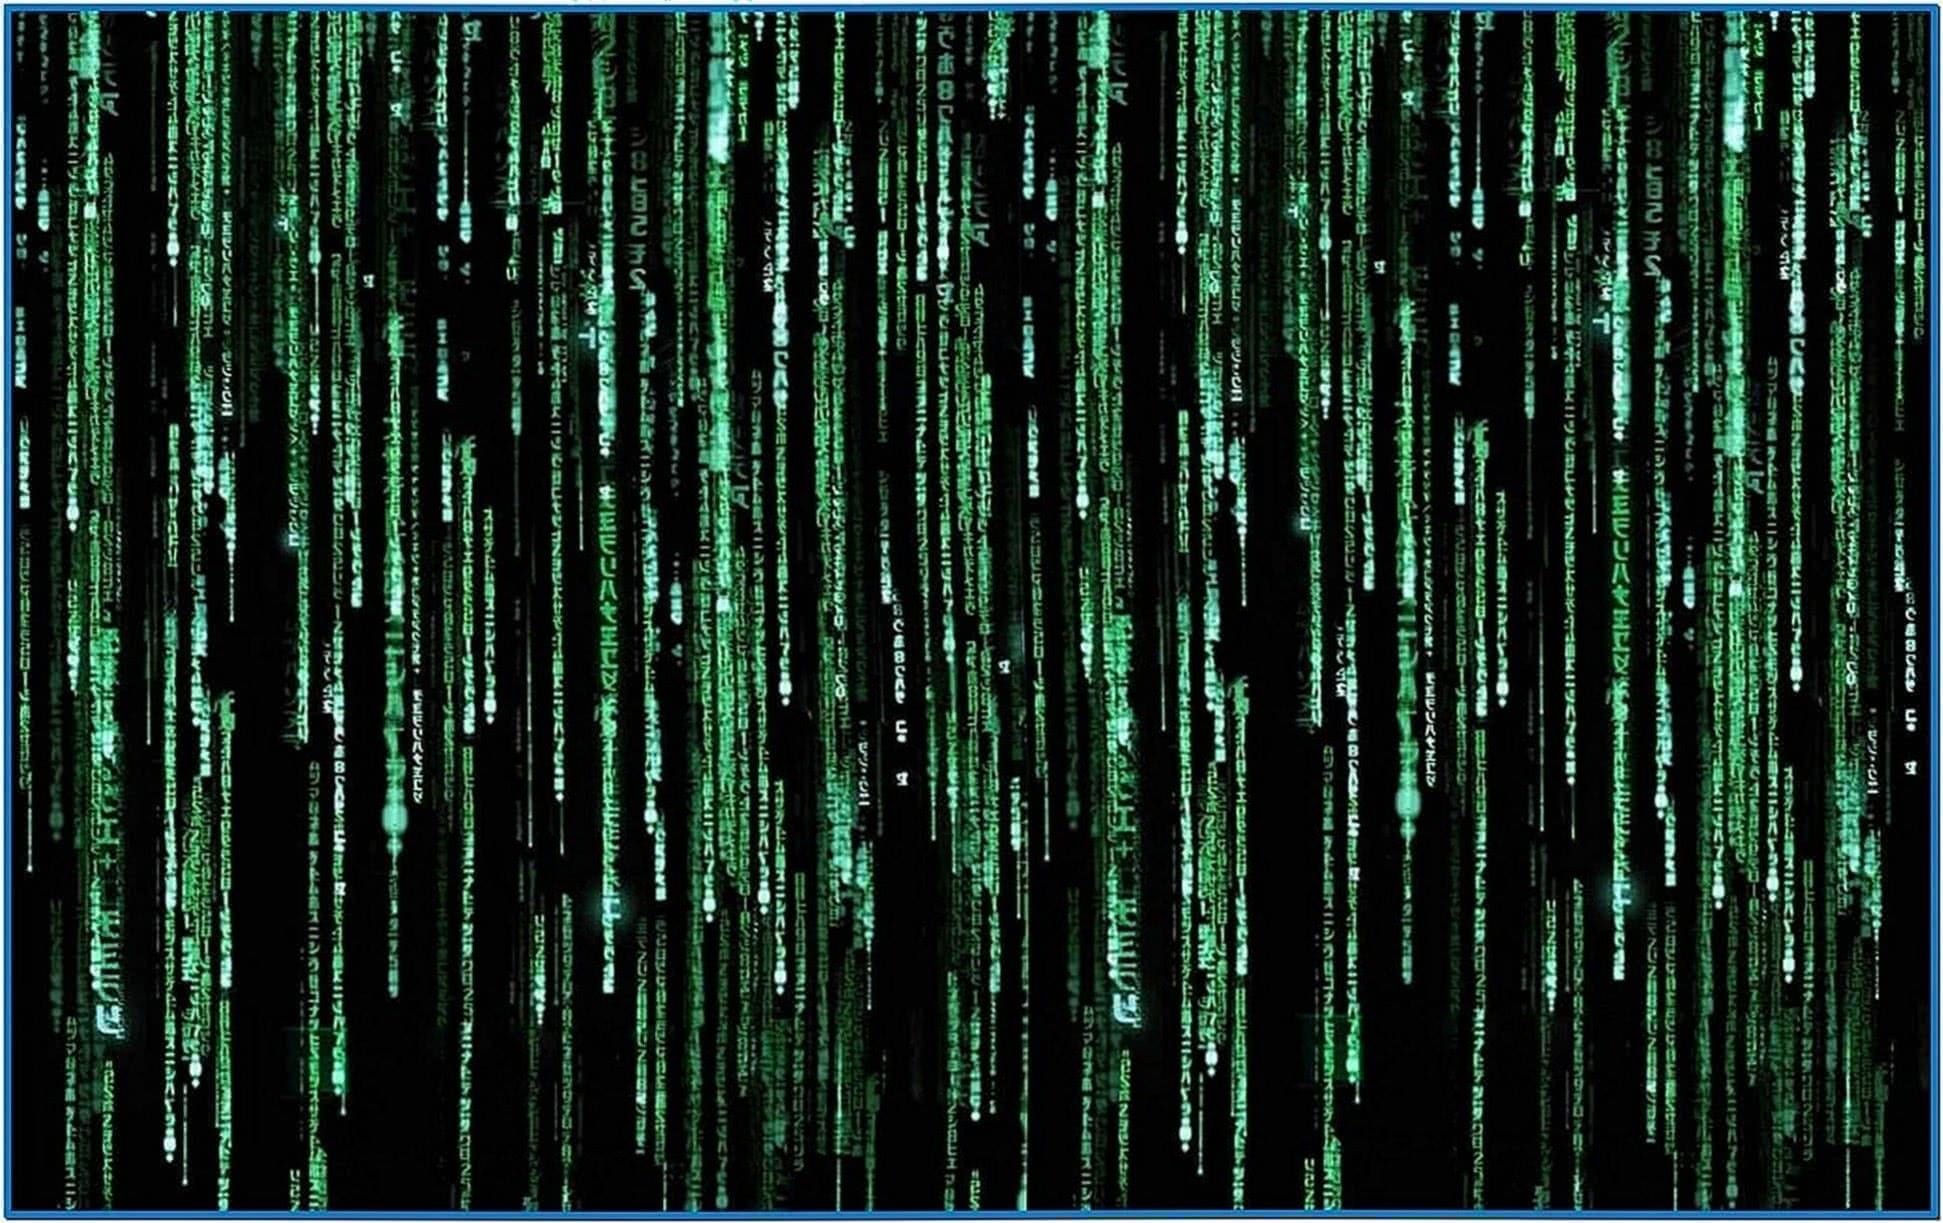 Matrix Code Screensaver Windows 8